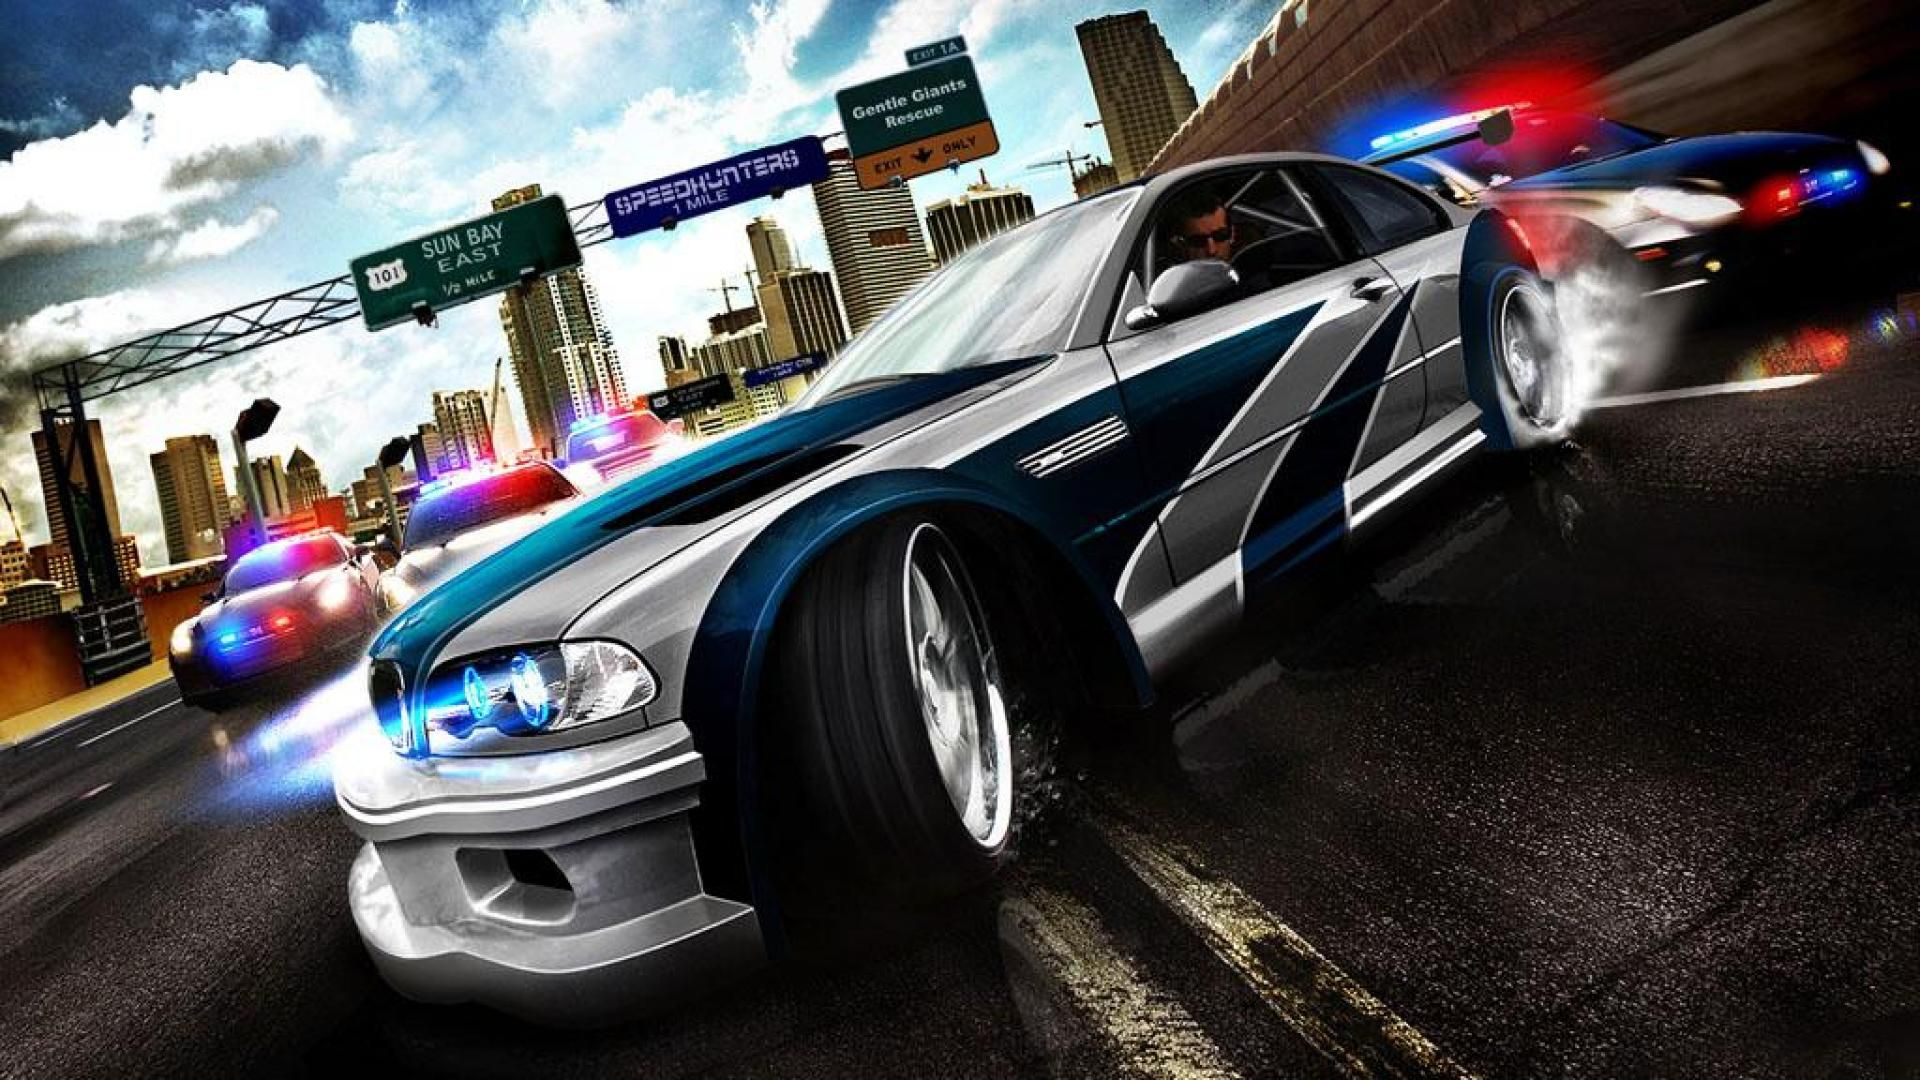 Need For Speed Wallpaper Movie Games 11143 Full Hd Wallpaper